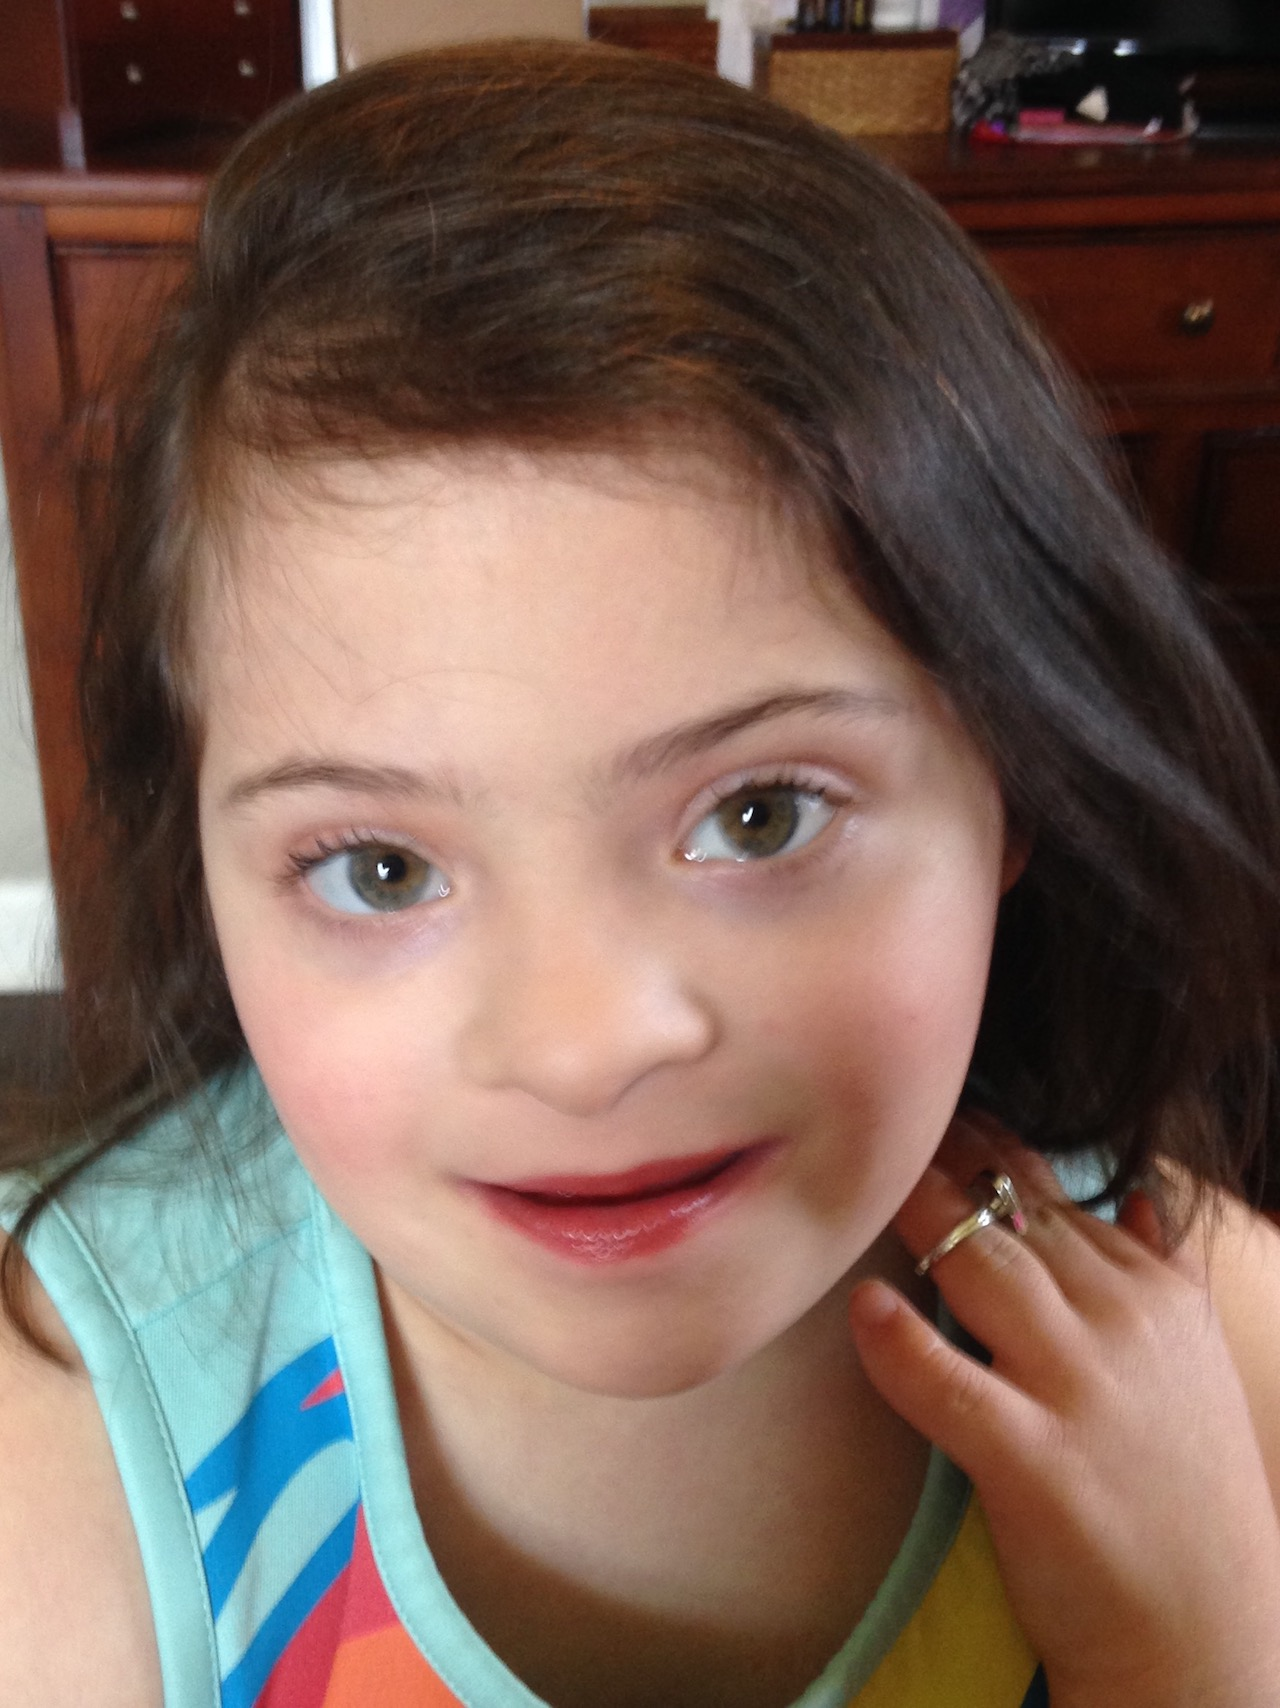 Girl with Down syndrome wearing makeup